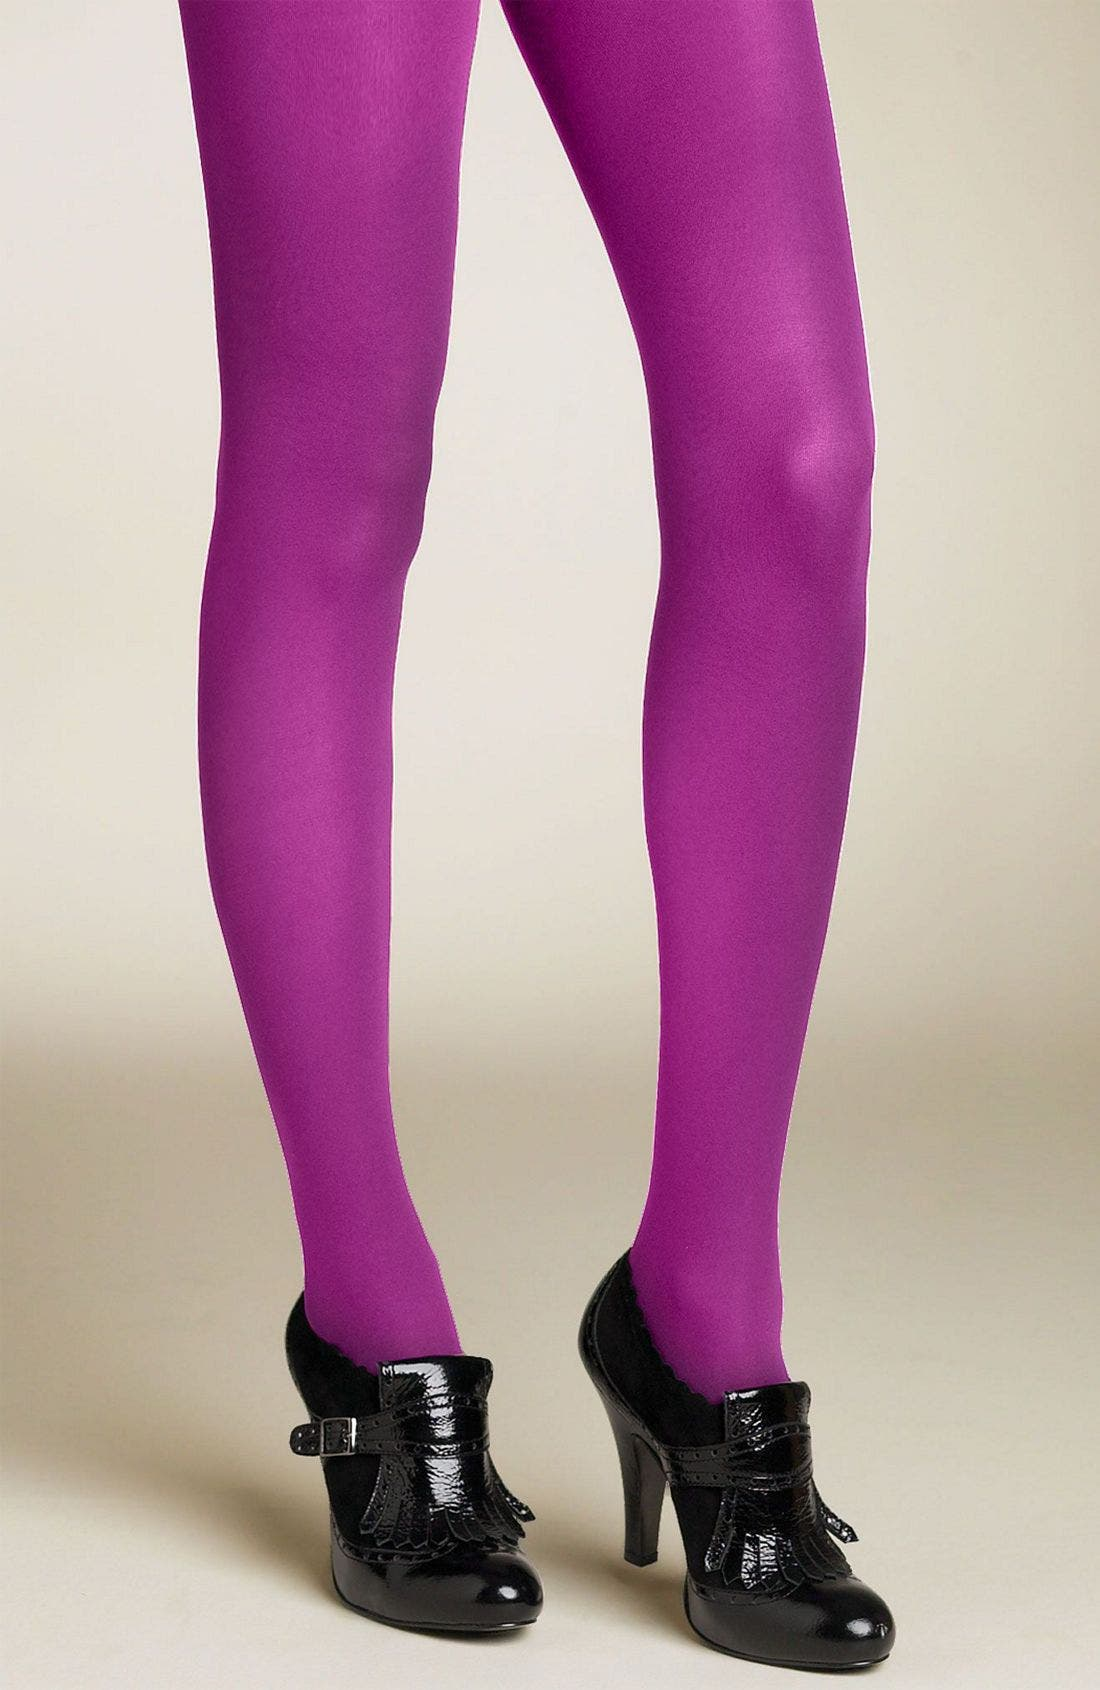 Super Opaque Tights,                             Main thumbnail 1, color,                             Aubergine